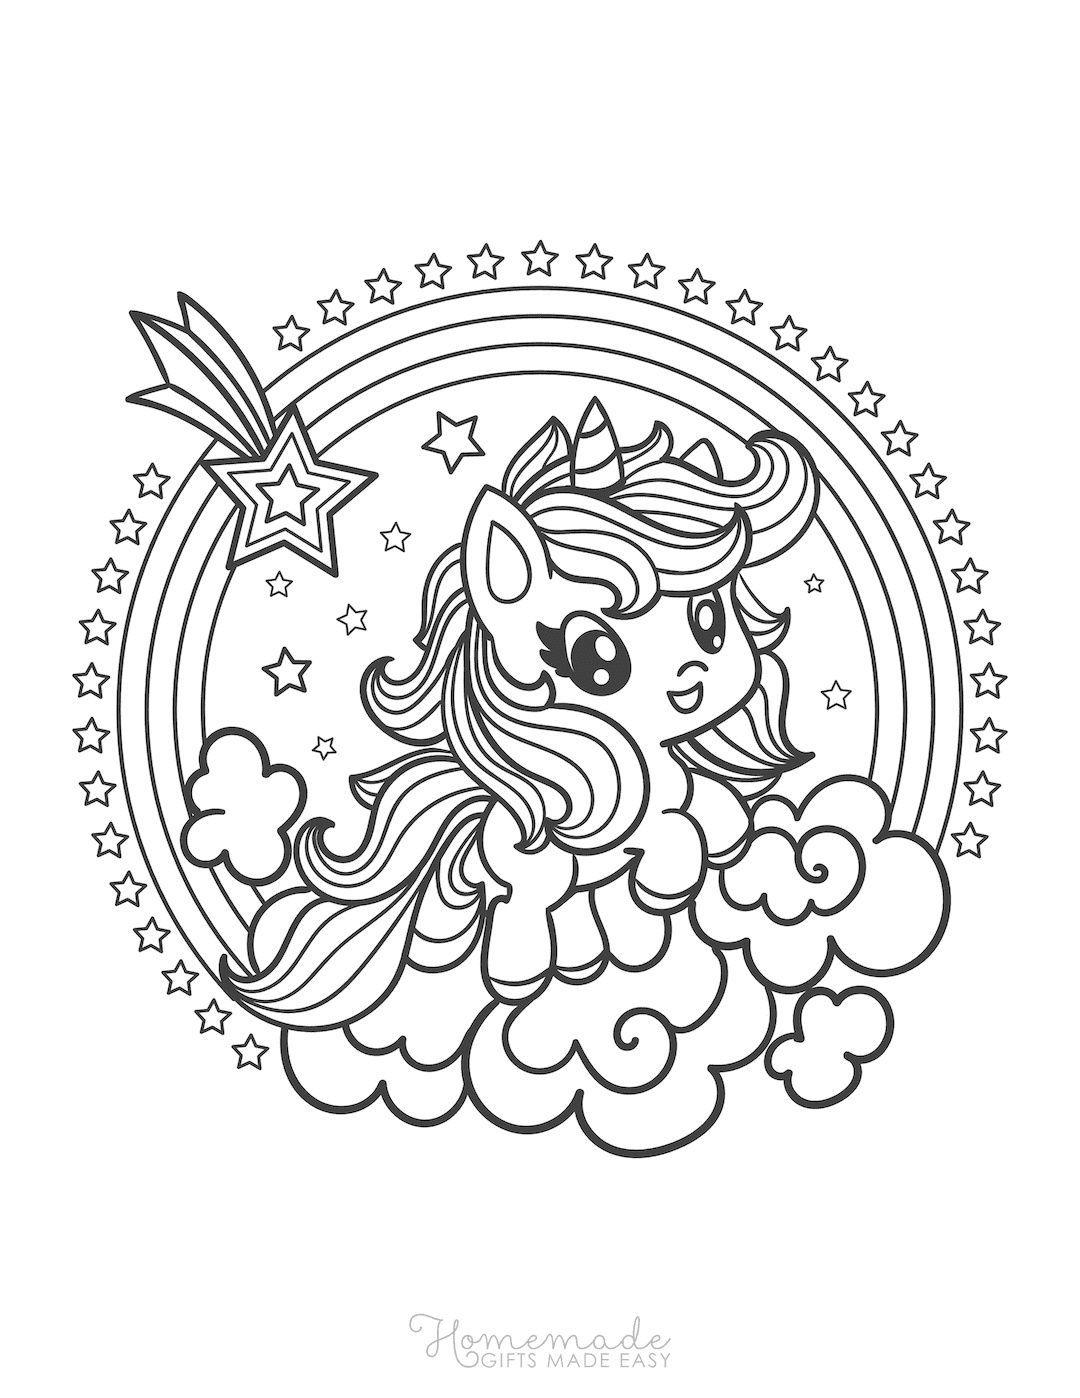 75 Magical Unicorn Coloring Pages For Kids Adults Free Printables Unicorn Coloring Pages Coloring Pages Love Coloring Pages